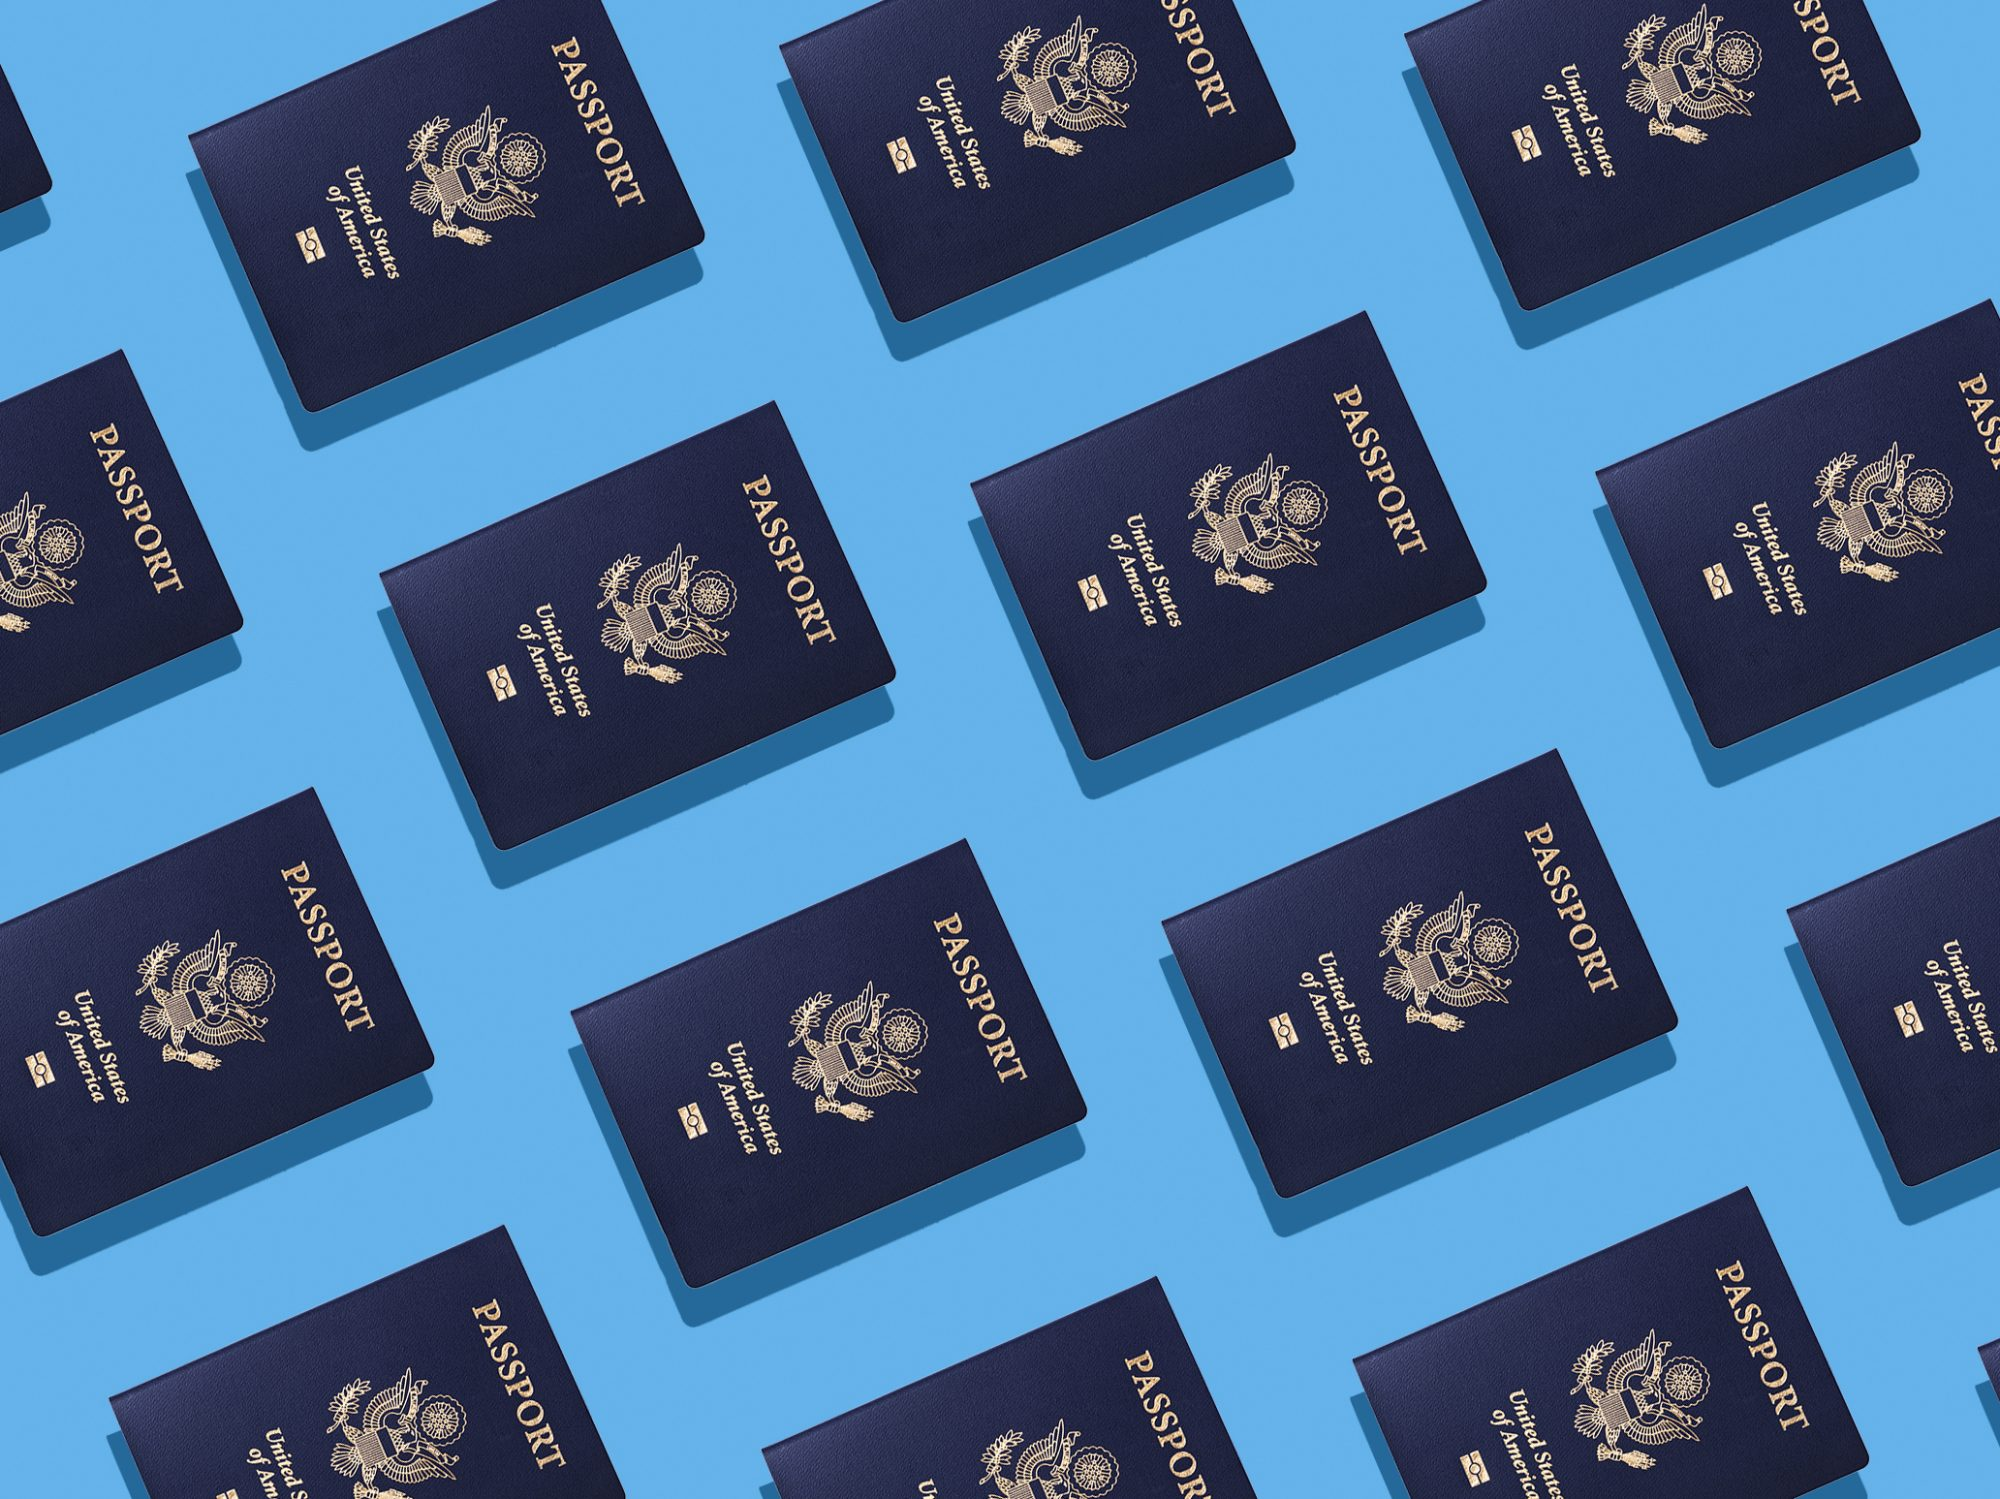 Passport Application Wait Times Are Taking Up to 18 Weeks, State Department Says